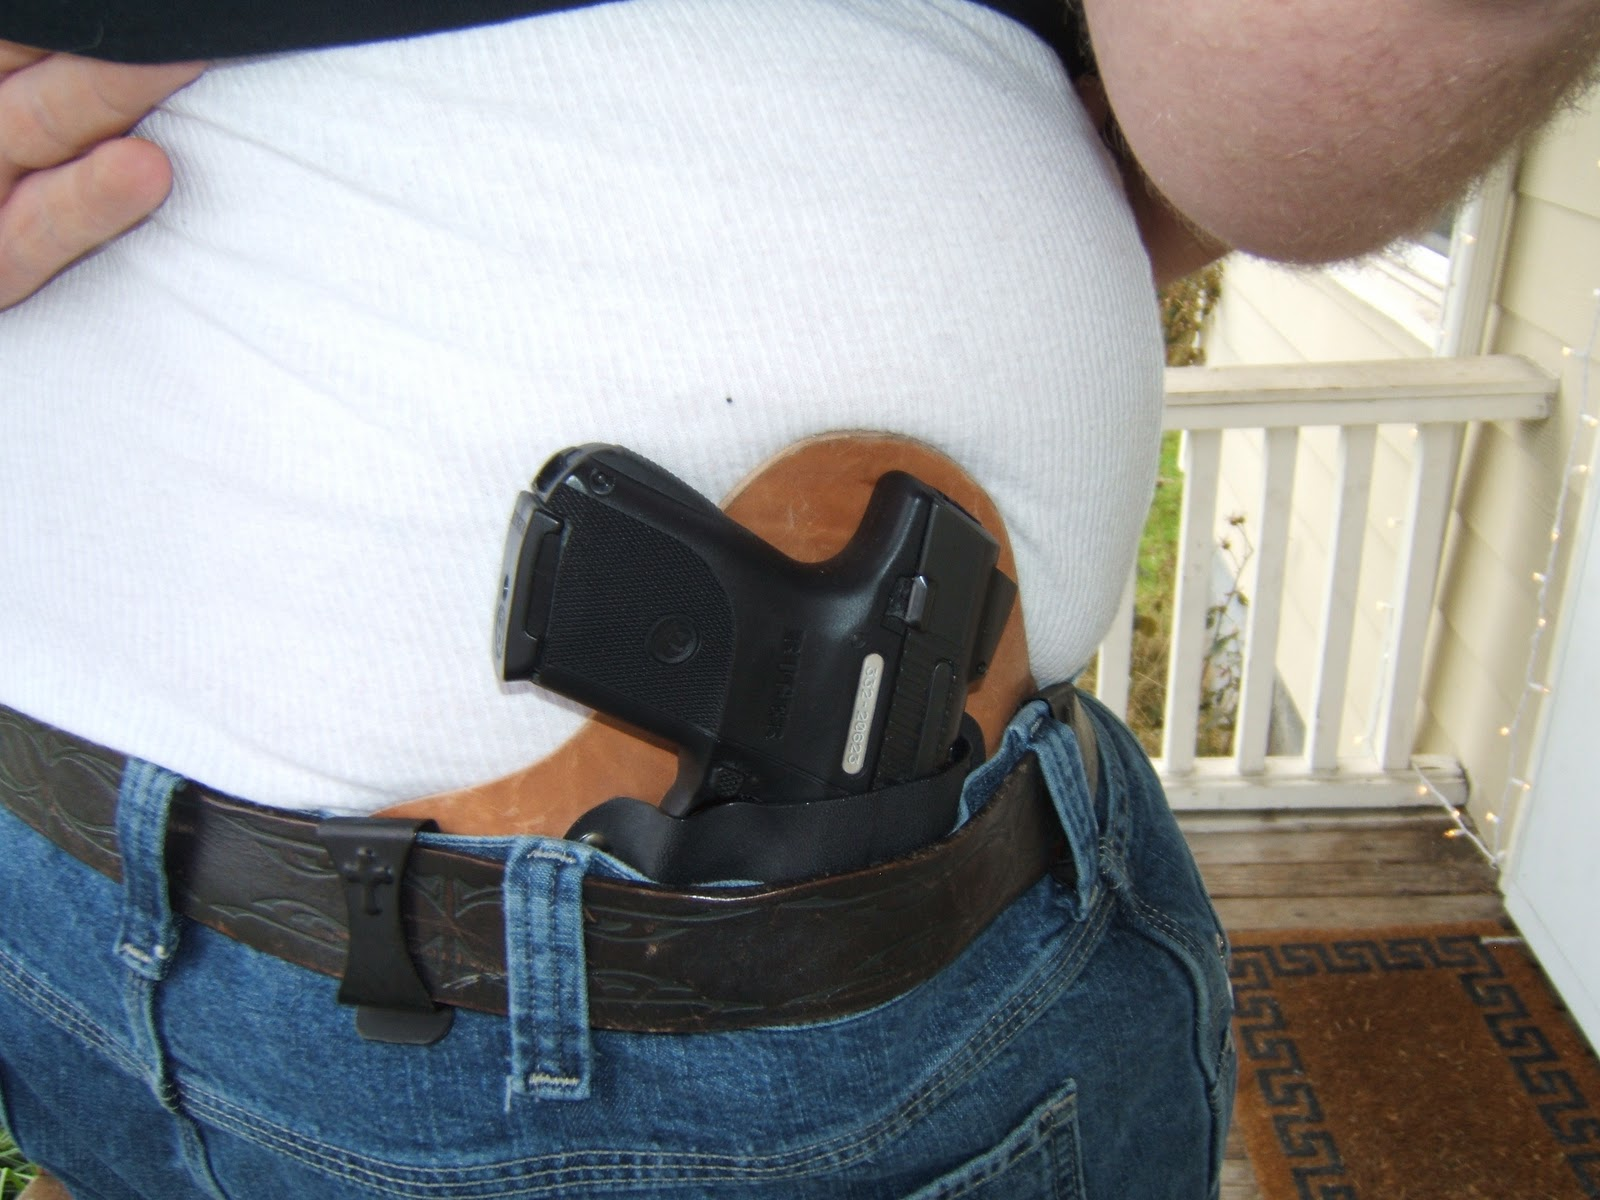 CrossBreed Holsters Riggers Nylon Belt is a heavy duty gun belt strong enough to carry your concealed carry, or range gear.